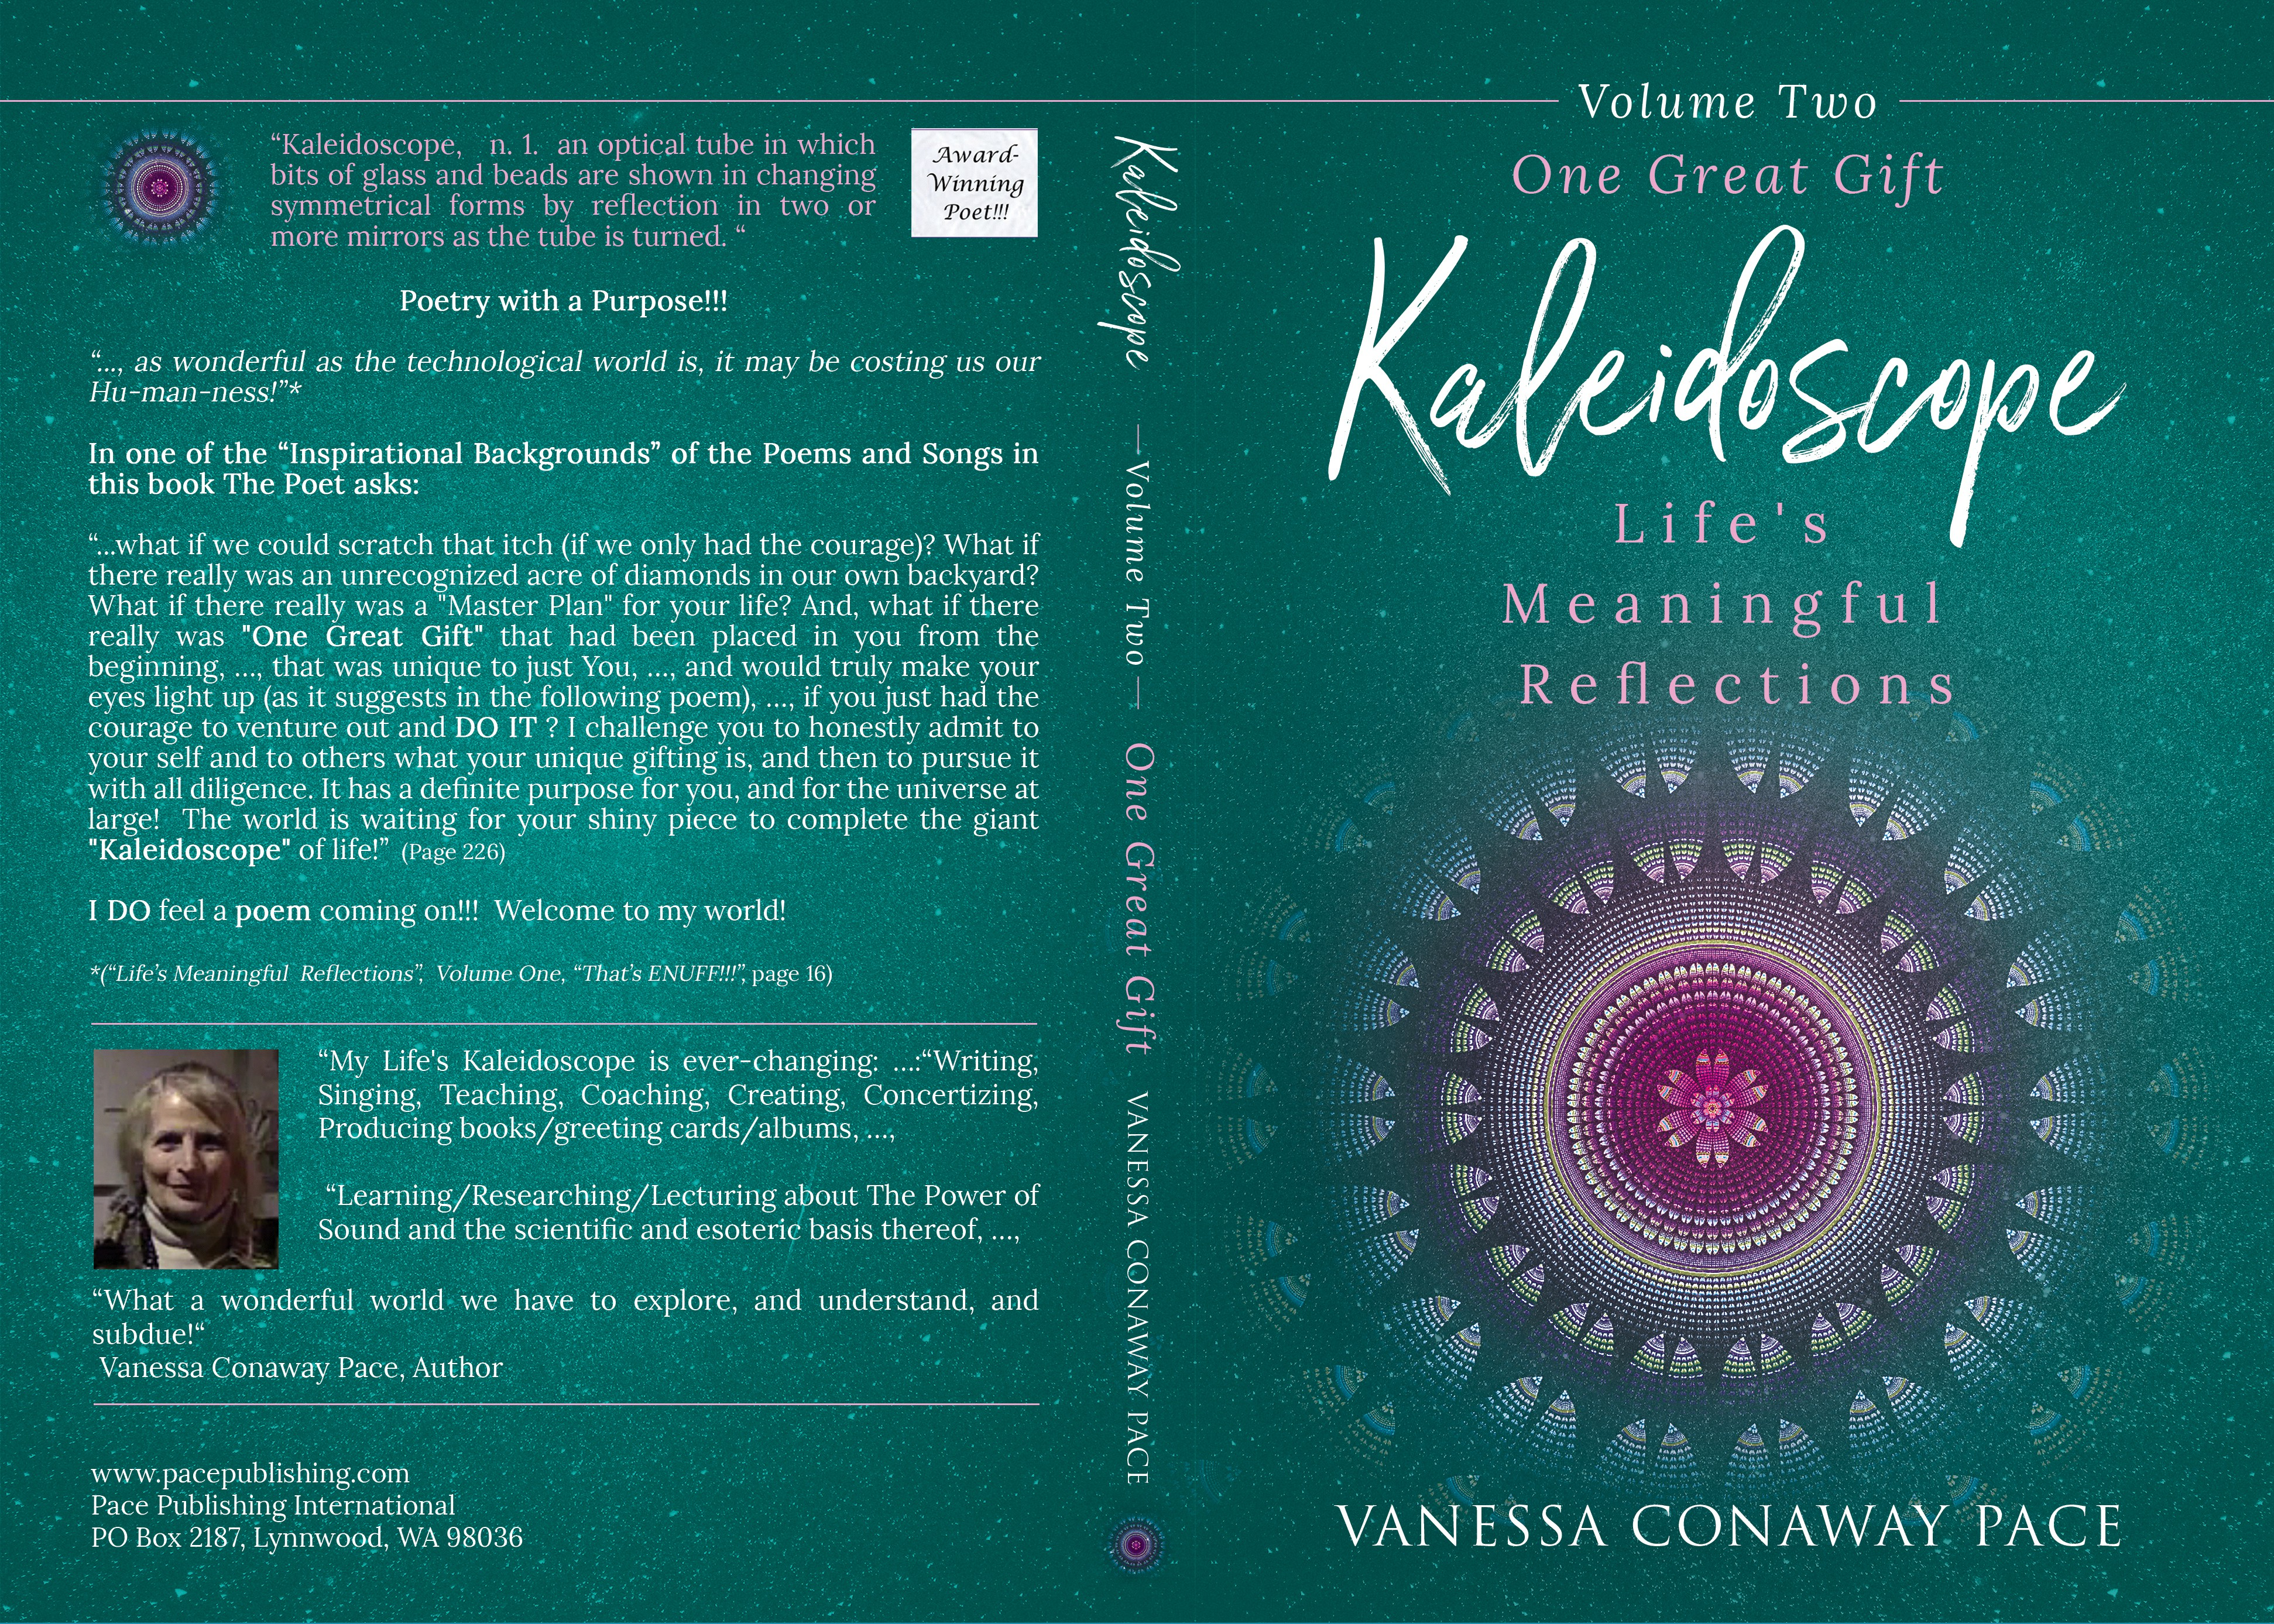 """Kaleidoscope:  Life's Meaningful Reflections, Volume 2 """"One Great Gift"""""""